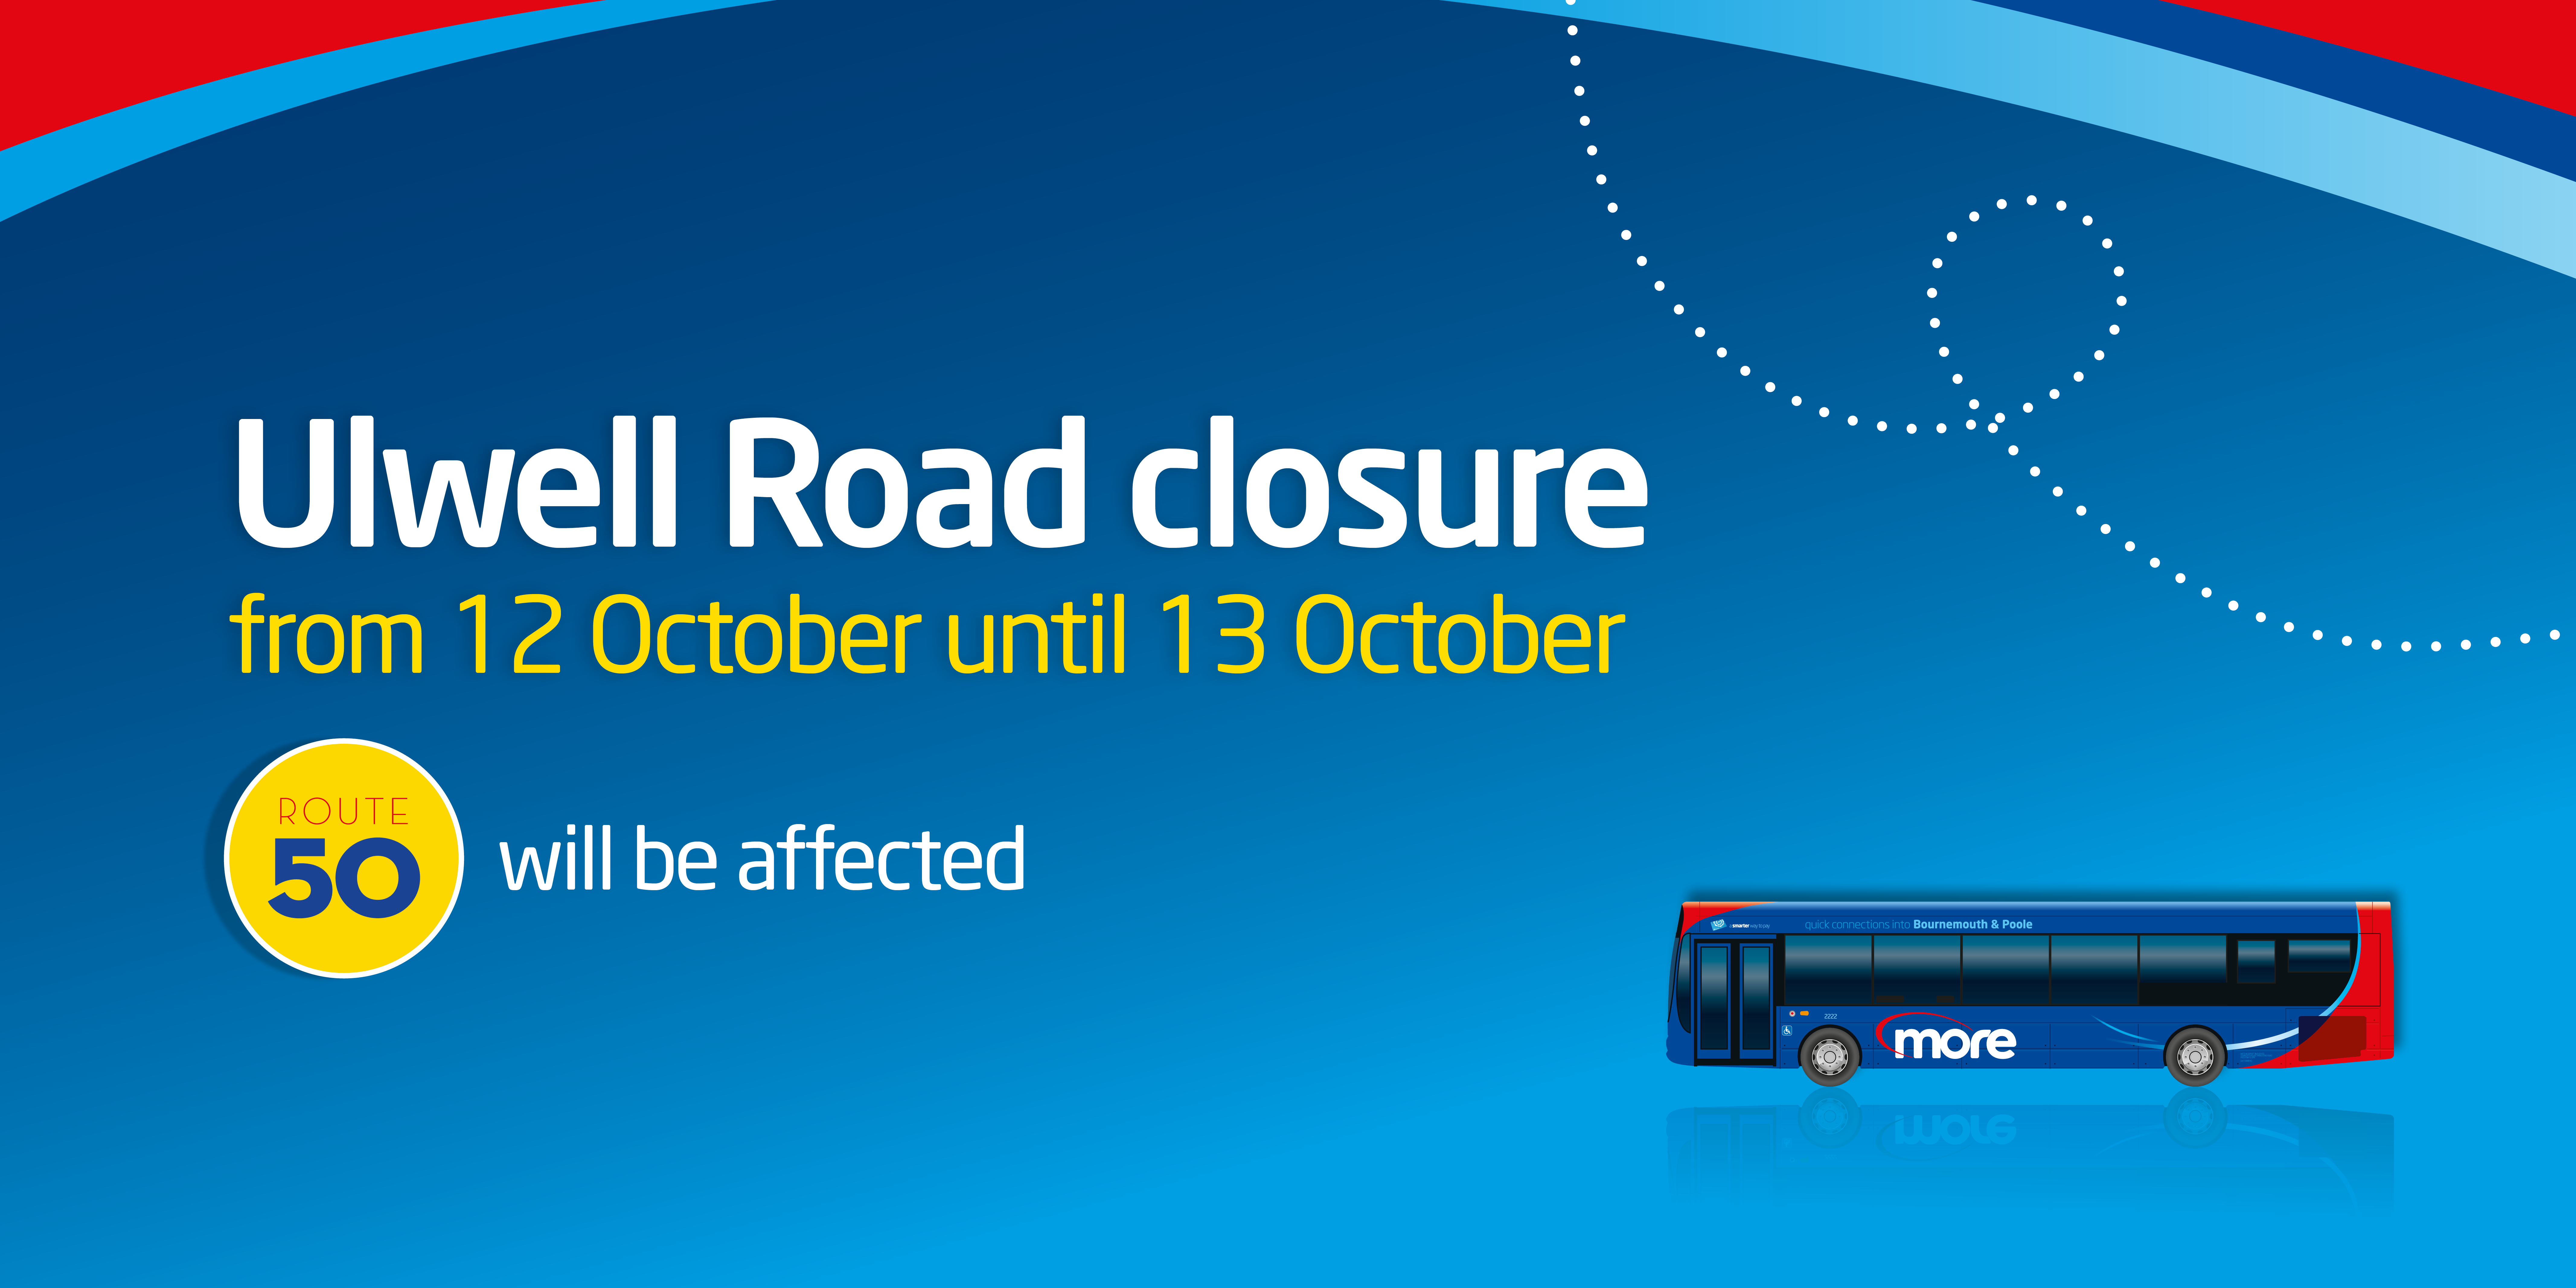 ulwell road closure from 12 october until 13 october